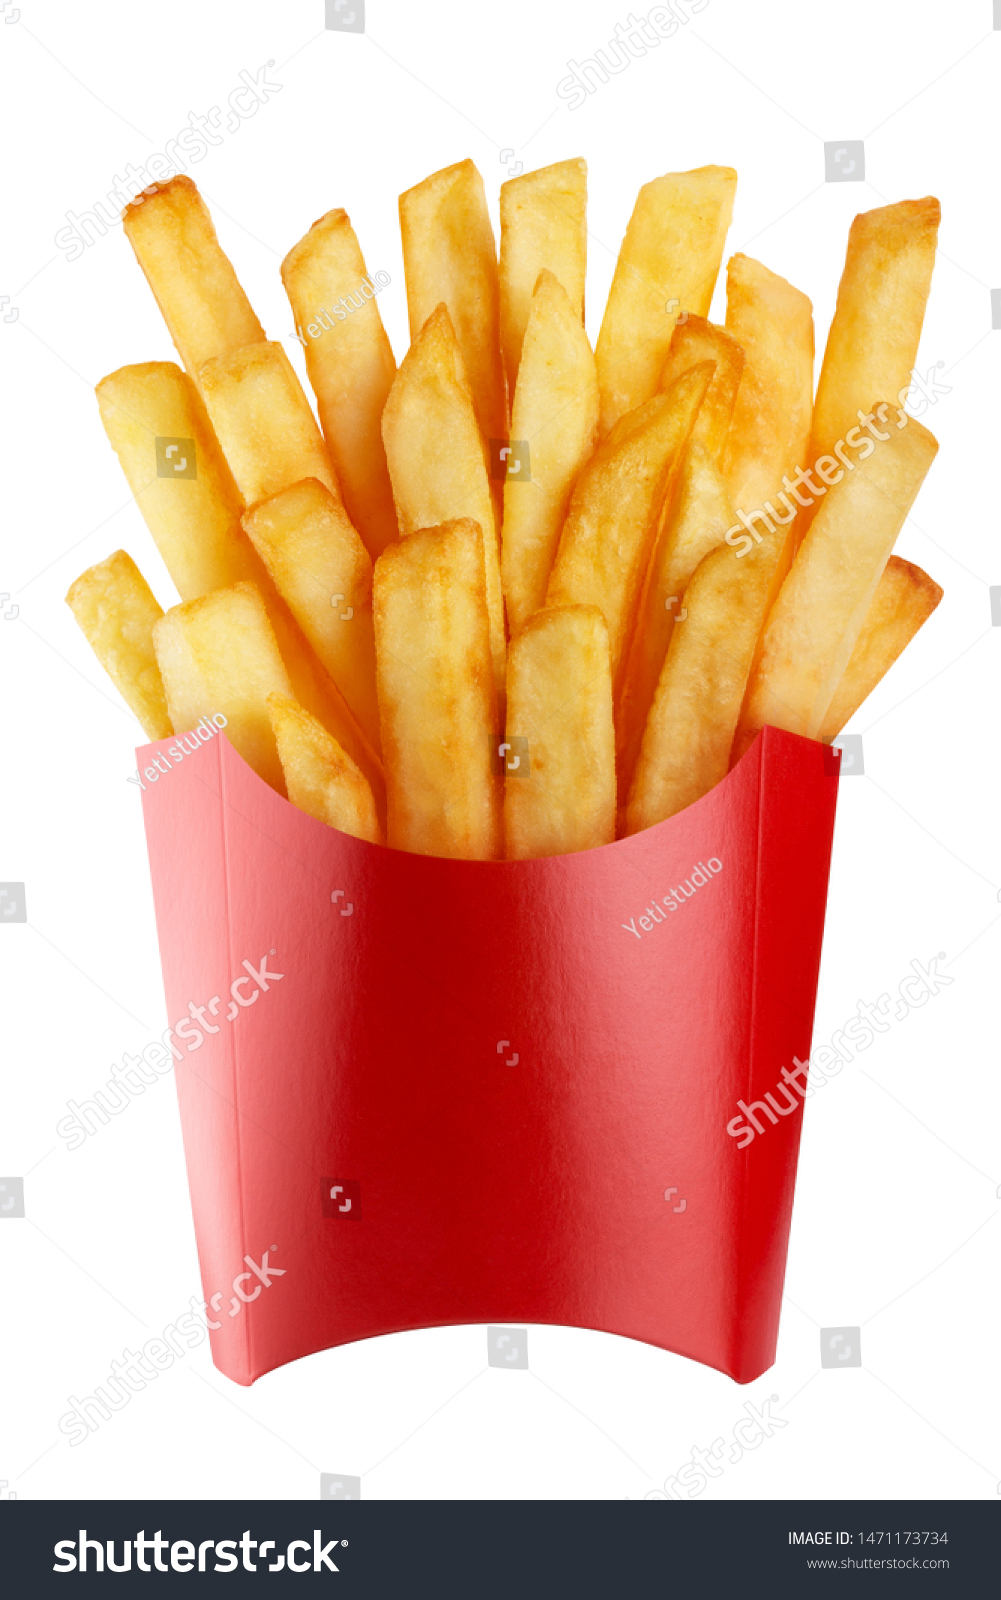 Delicious french potato fries in a red carton package box, isolated on white background #1471173734